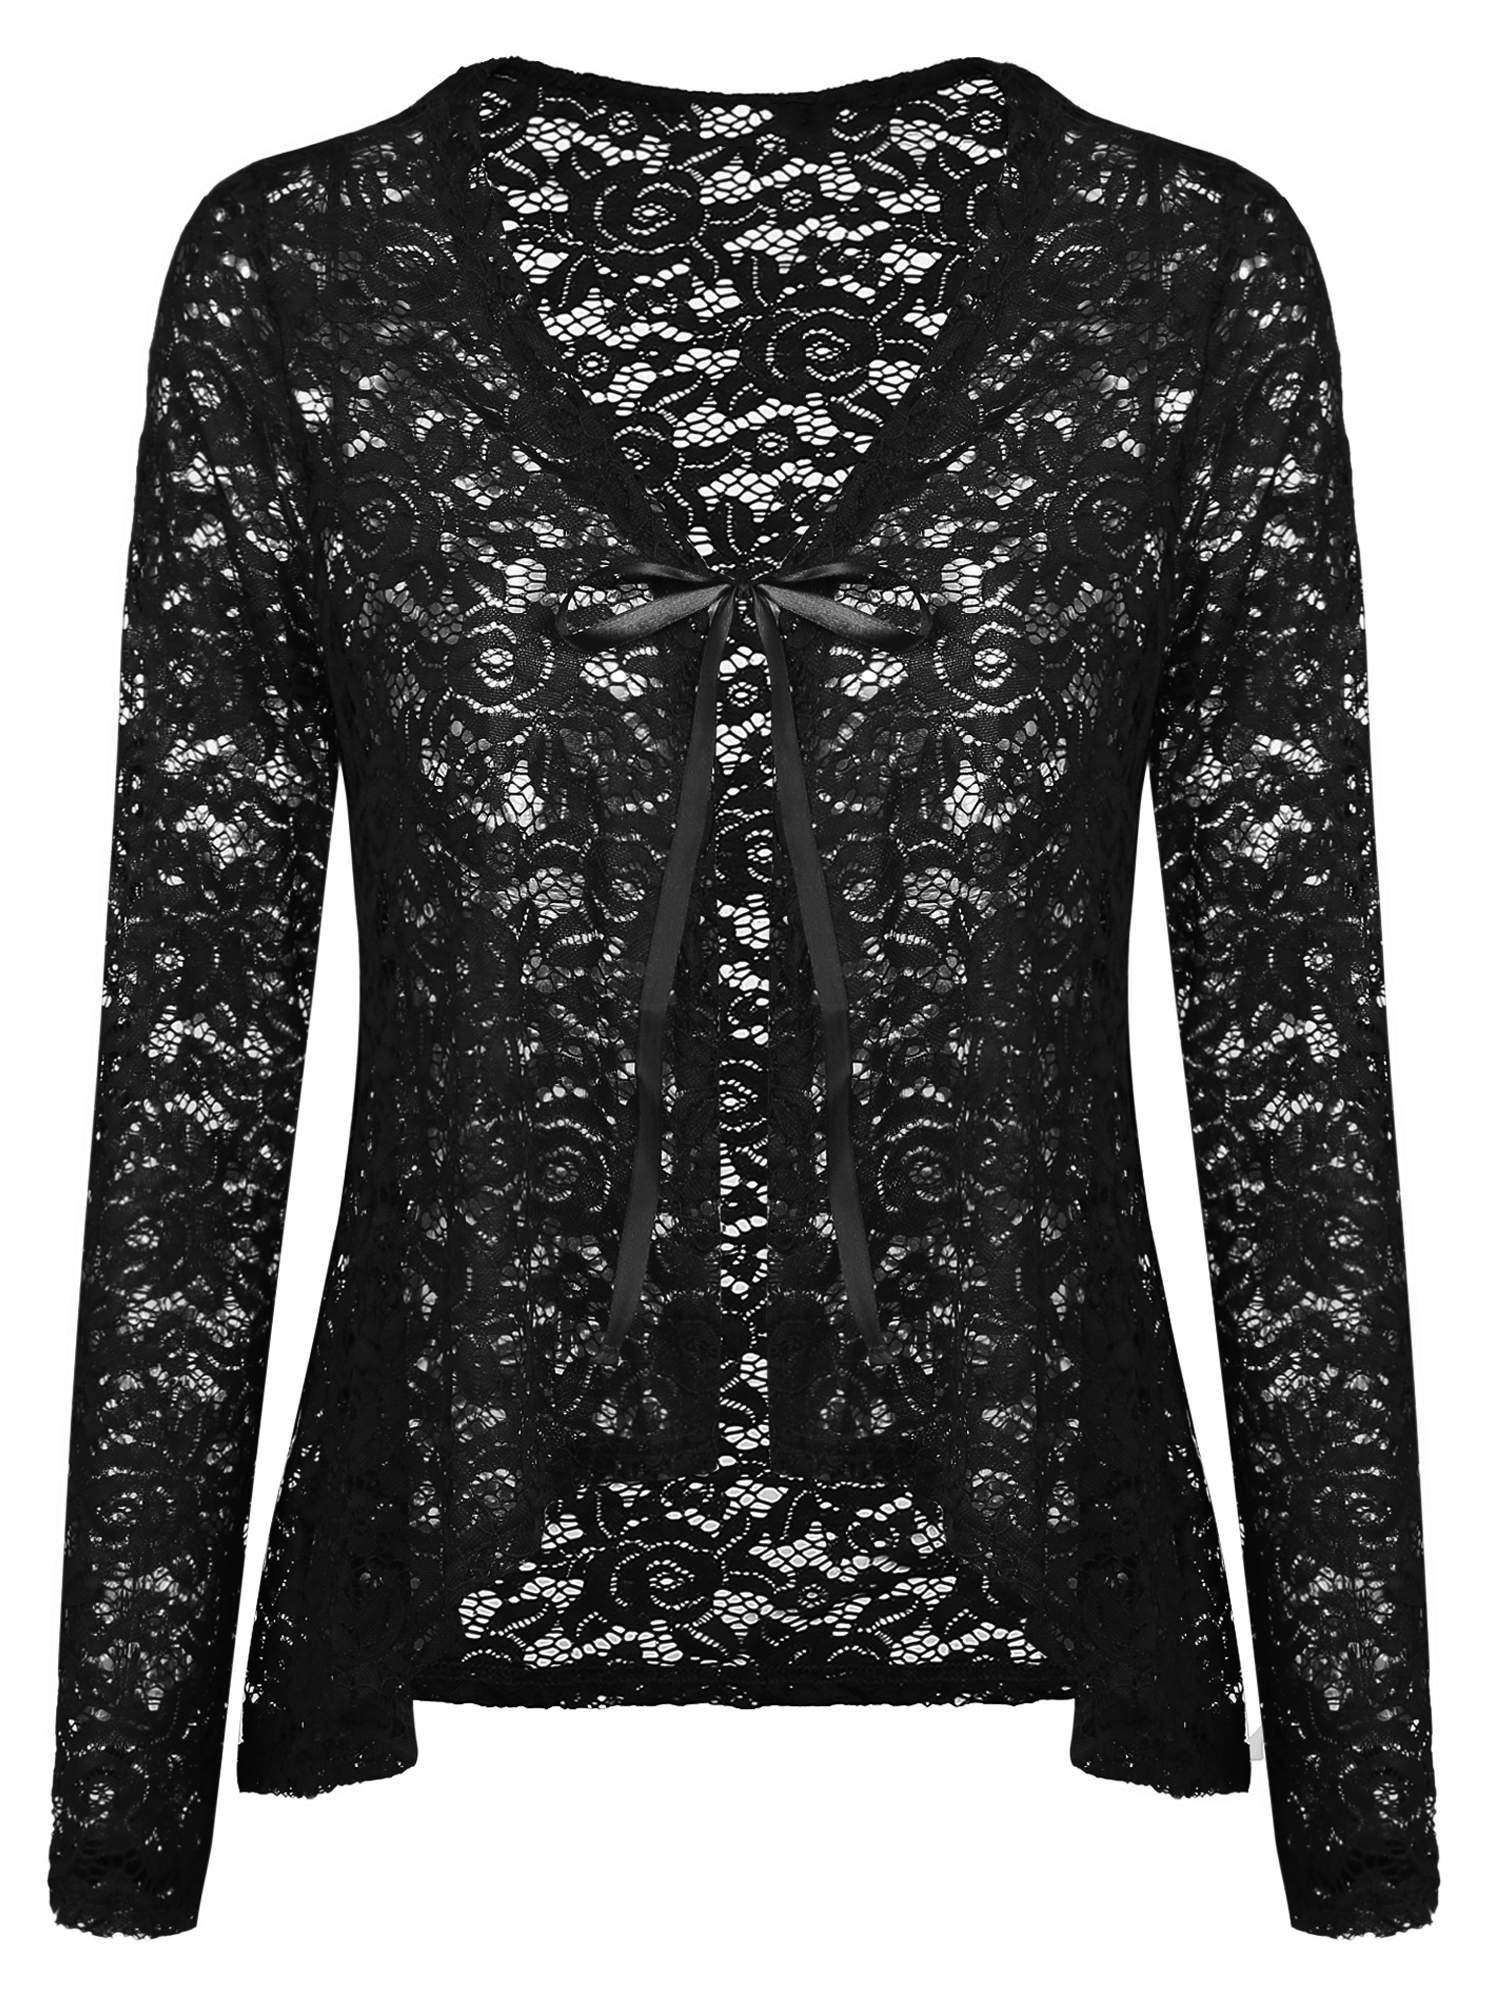 Concep Crochet Cardigan for Ladies Sexy Lace Long Sleeve Open Front Shrug Jacket Cover Ups (Black, XL)